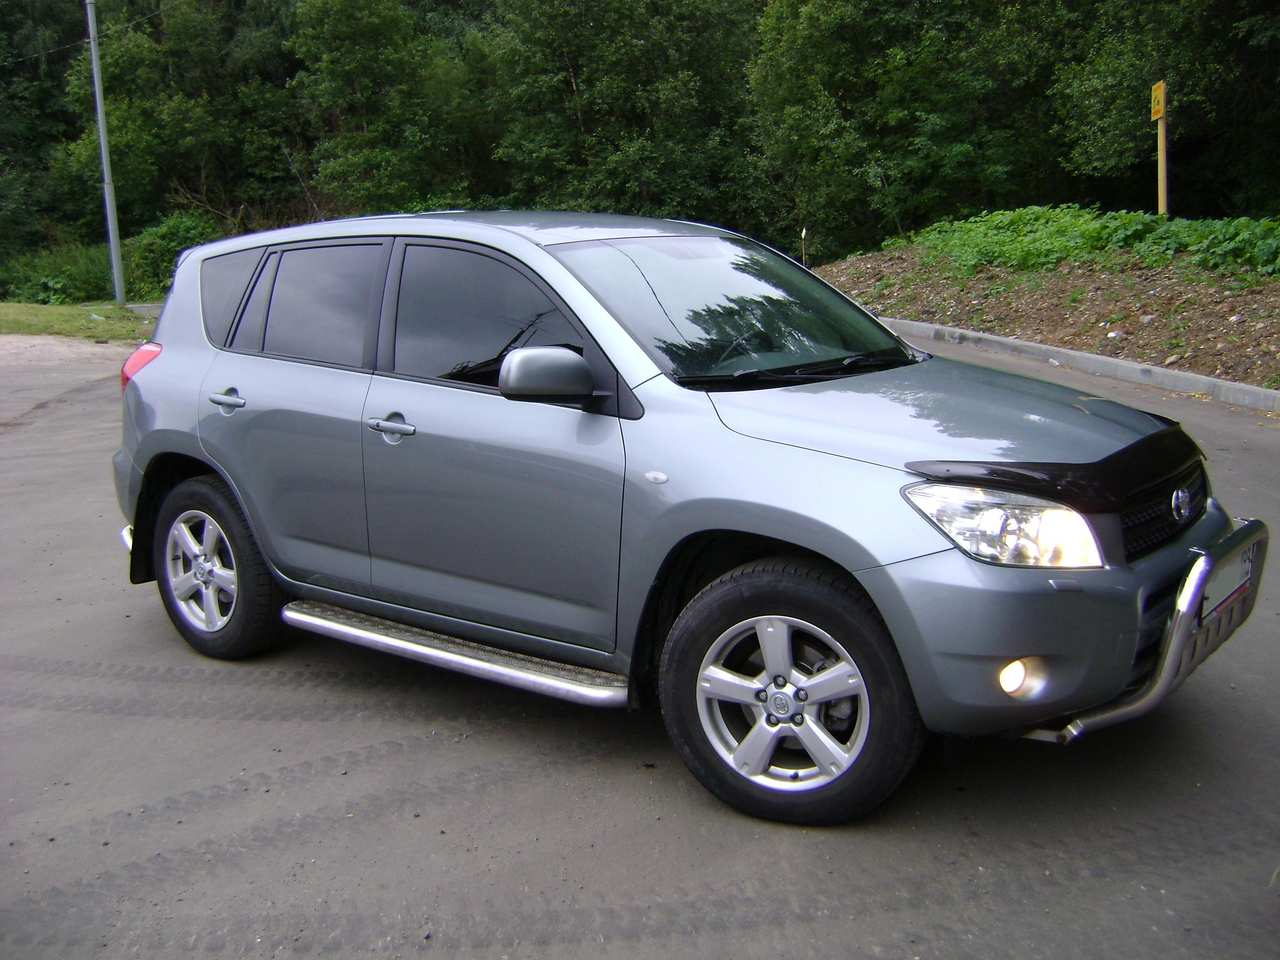 used 2006 toyota rav4 photos 2000cc gasoline automatic for sale. Black Bedroom Furniture Sets. Home Design Ideas